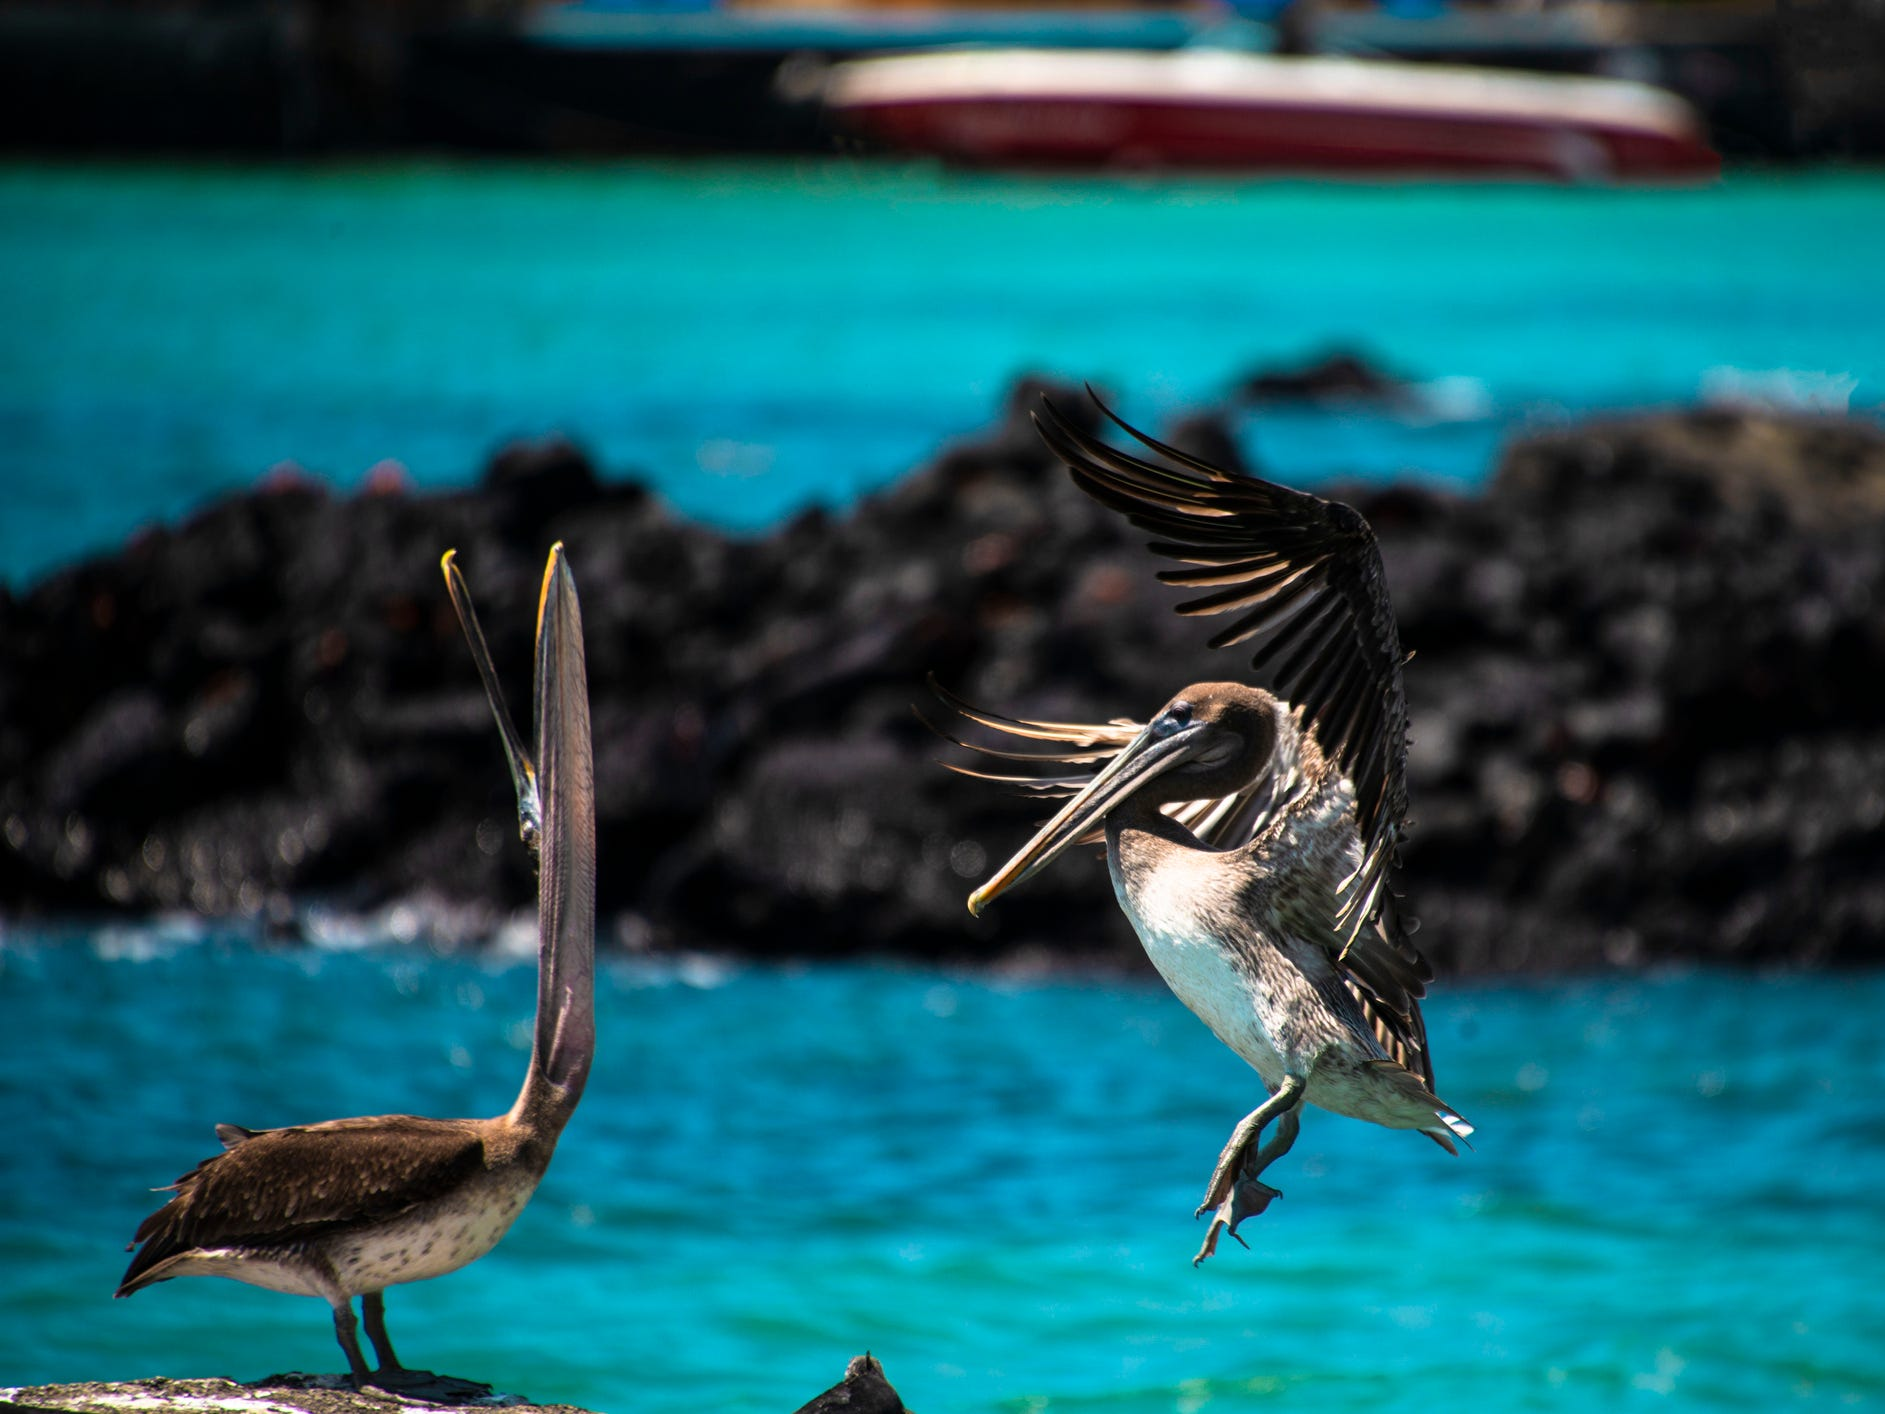 Pelicans in the Galapagos Islands, Ecuador.